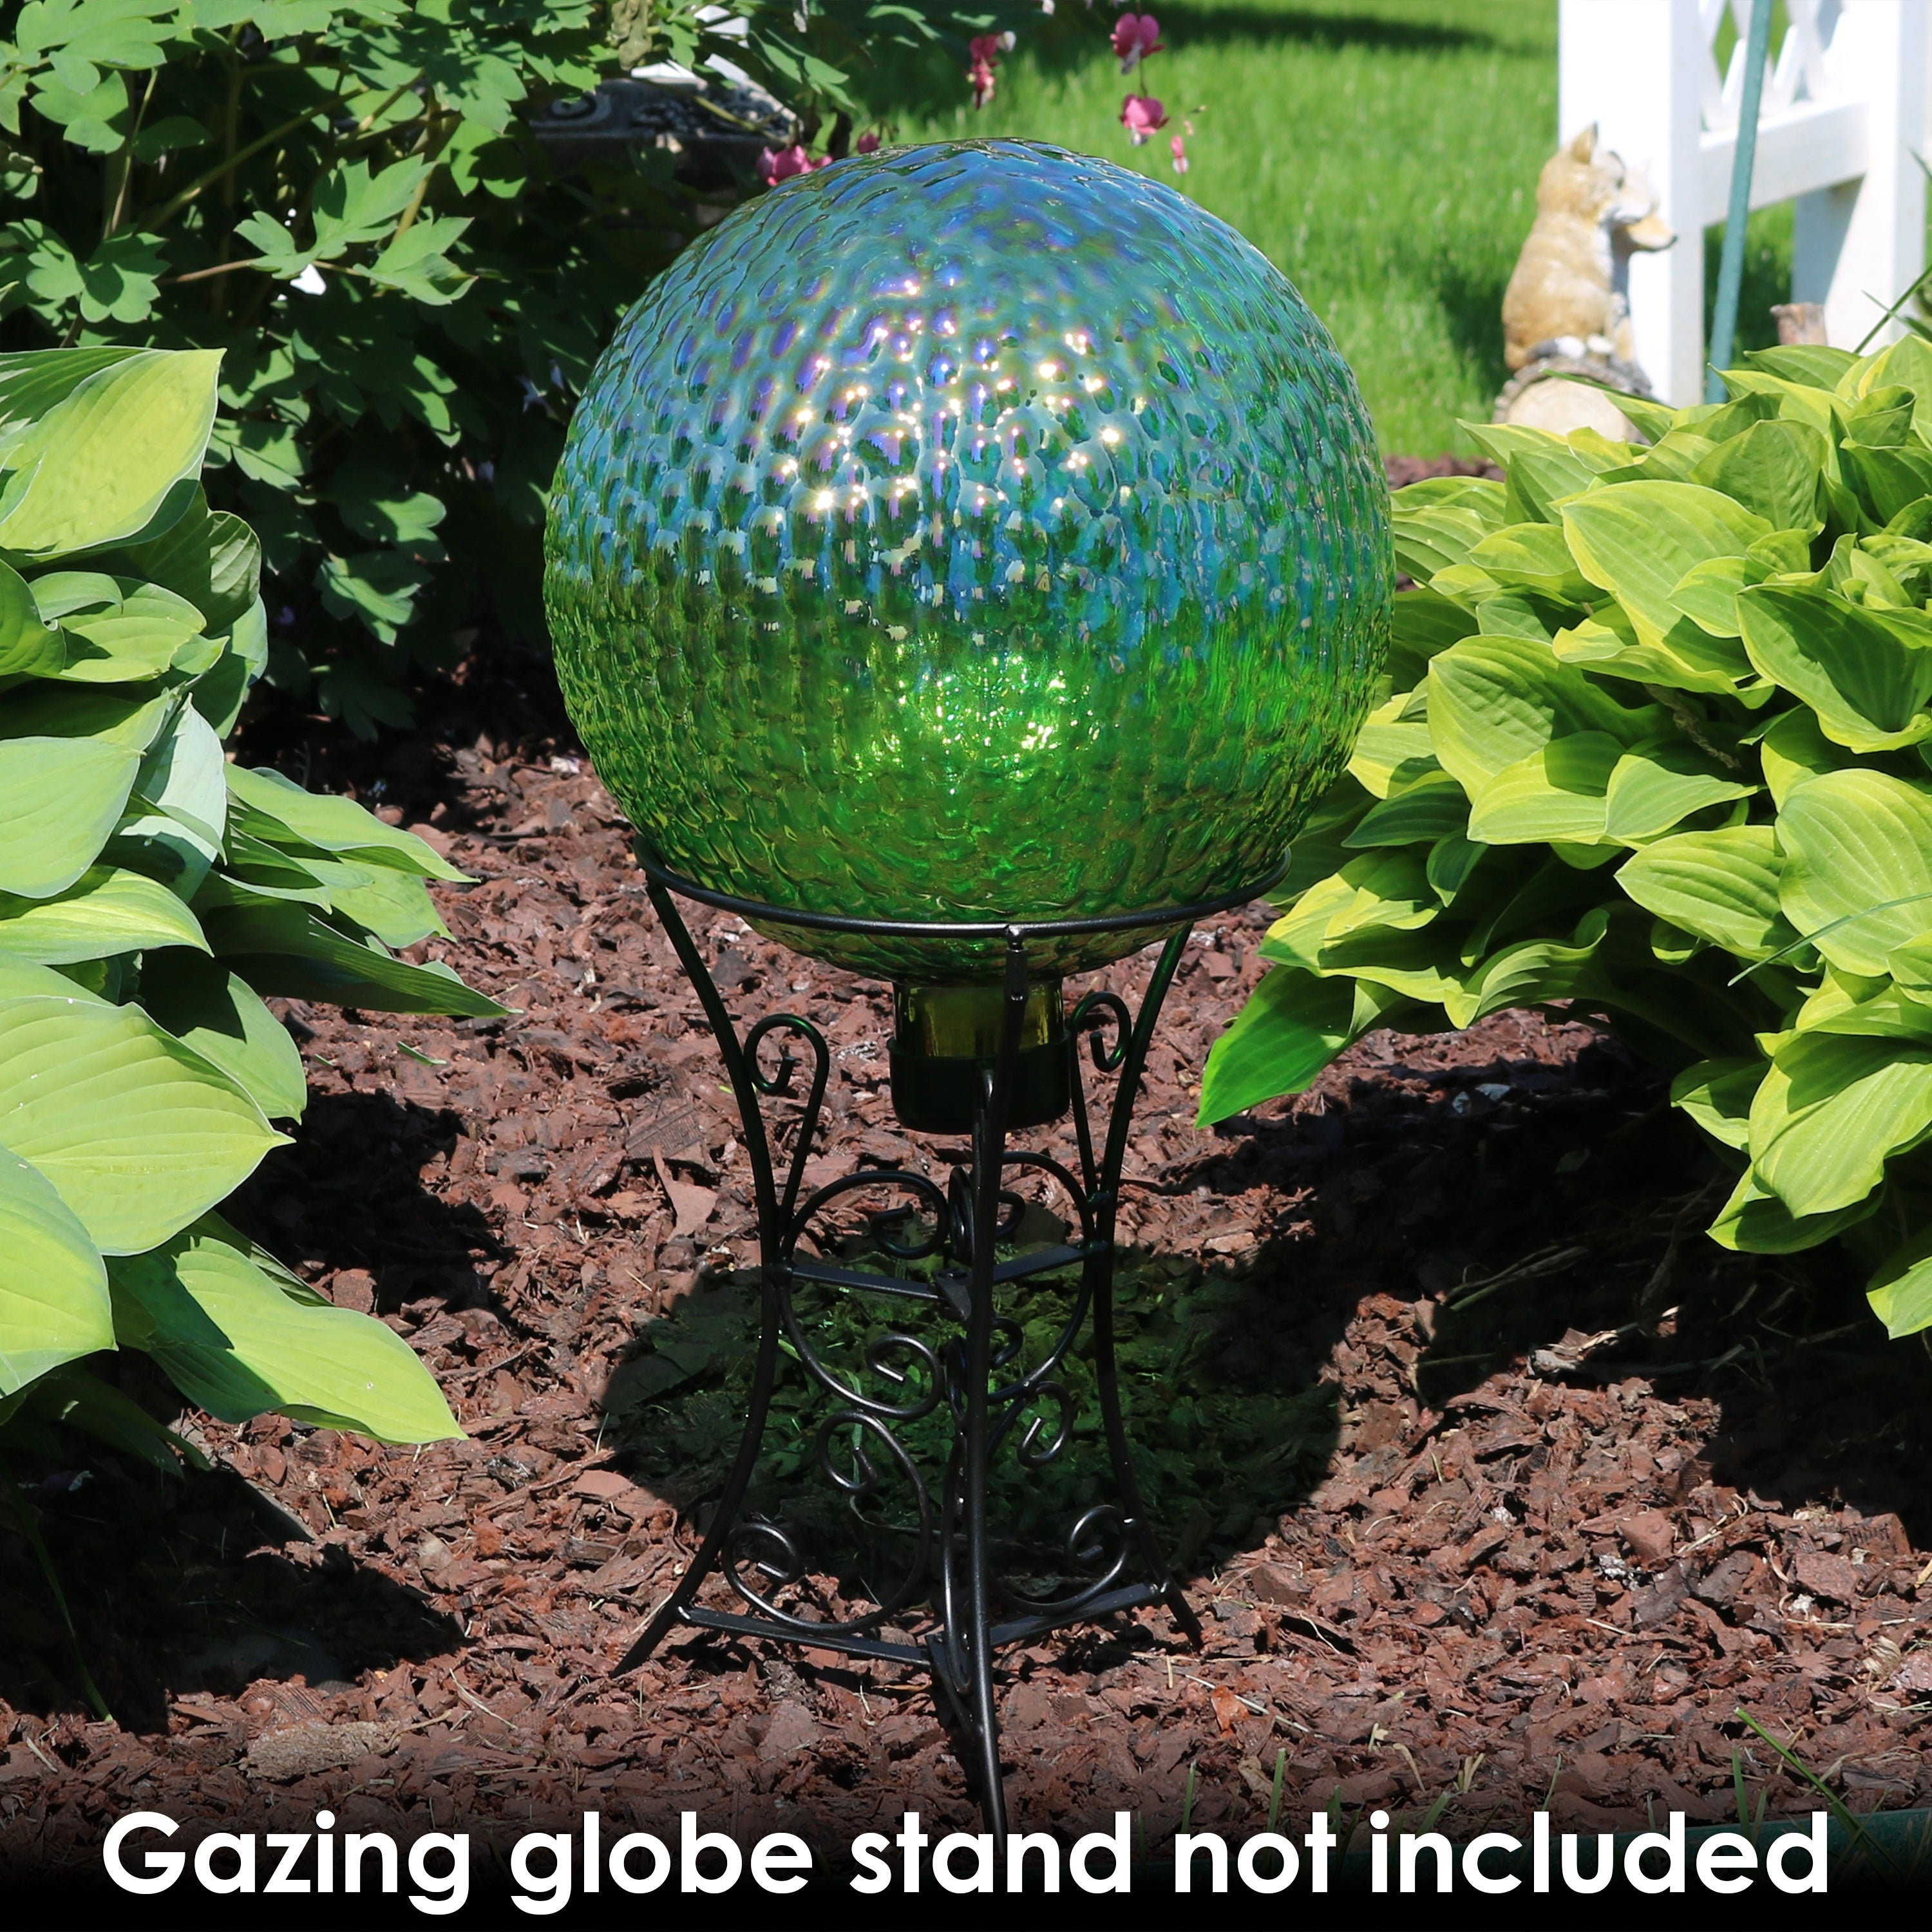 Shop Sunnydaze Green Textured Surface Outdoor Garden Gazing Globe Ball    10 Inch   Free Shipping On Orders Over $45   Overstock.com   21869541